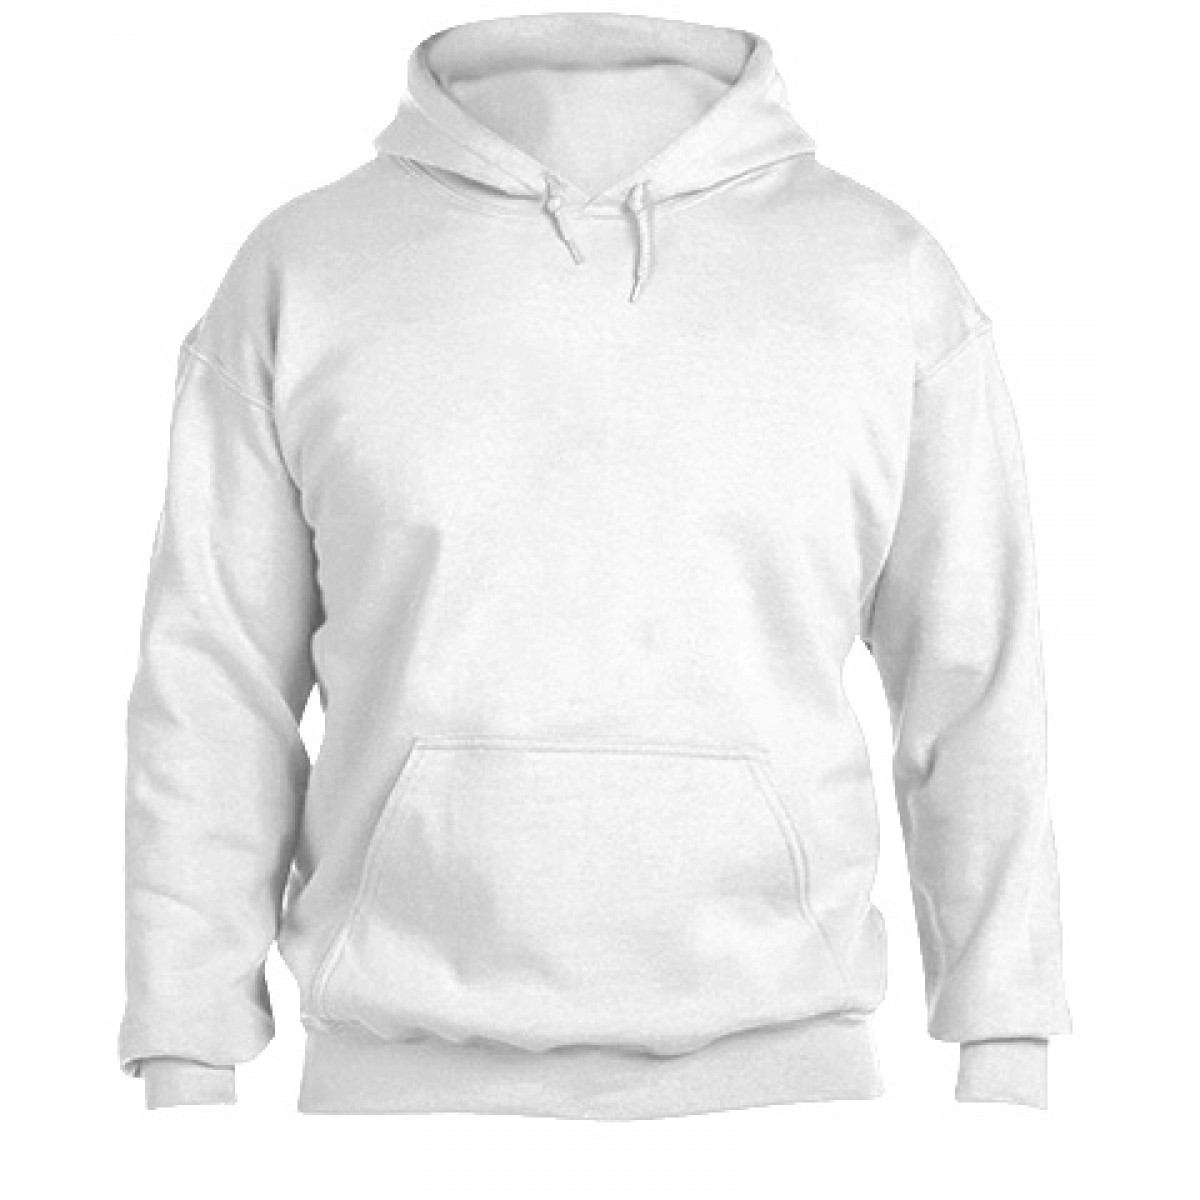 Solid Hooded Sweatshirt  50/50 Heavy Blend-White-2XL